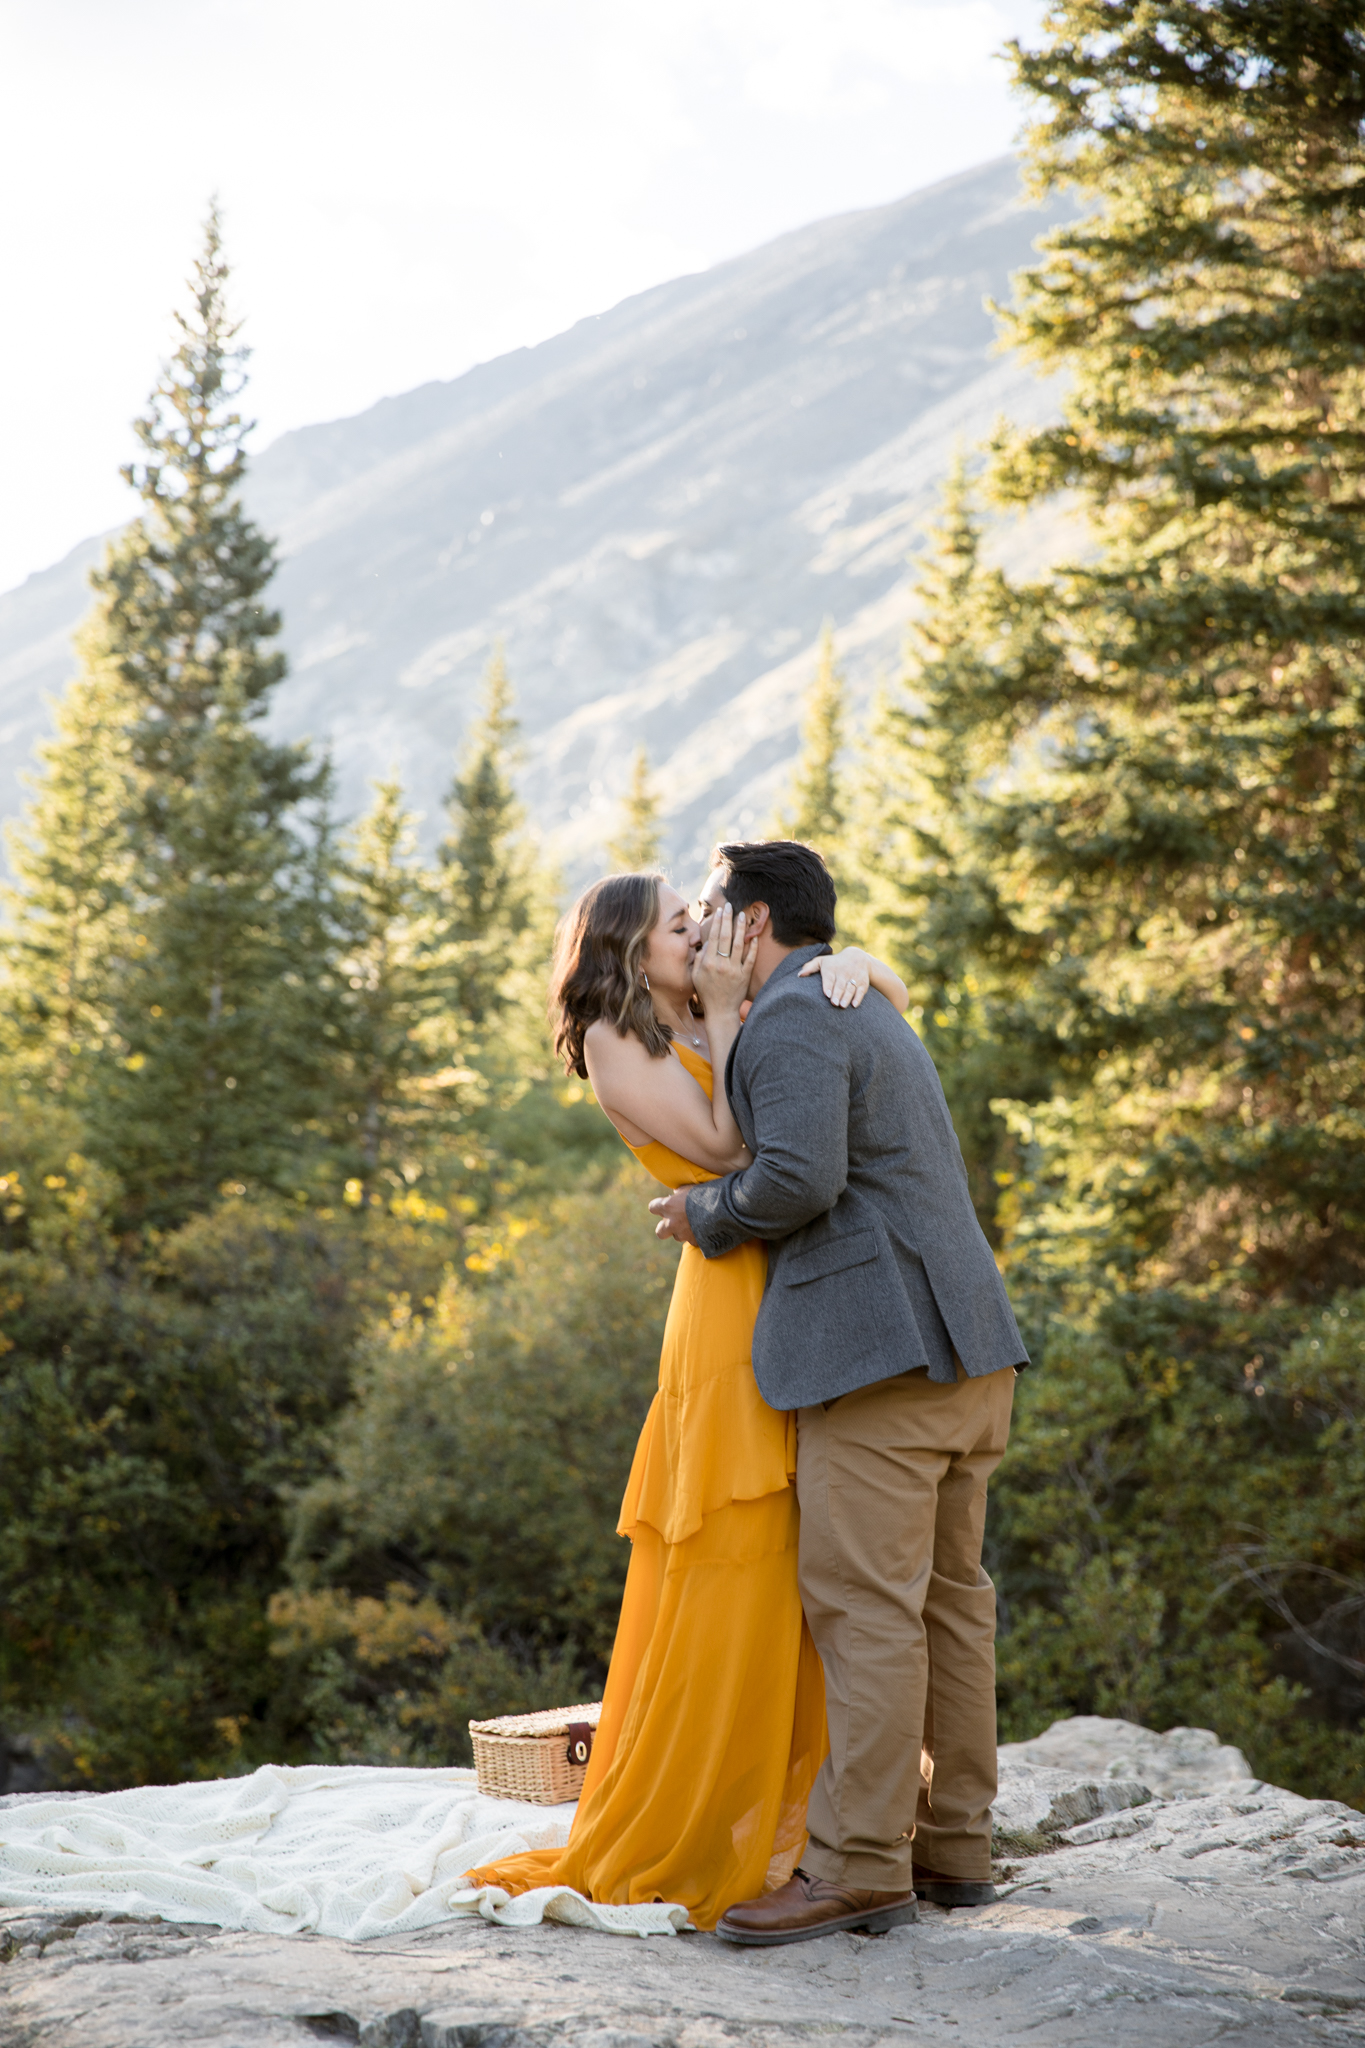 Outdoor Proposal Photo Session Colorado